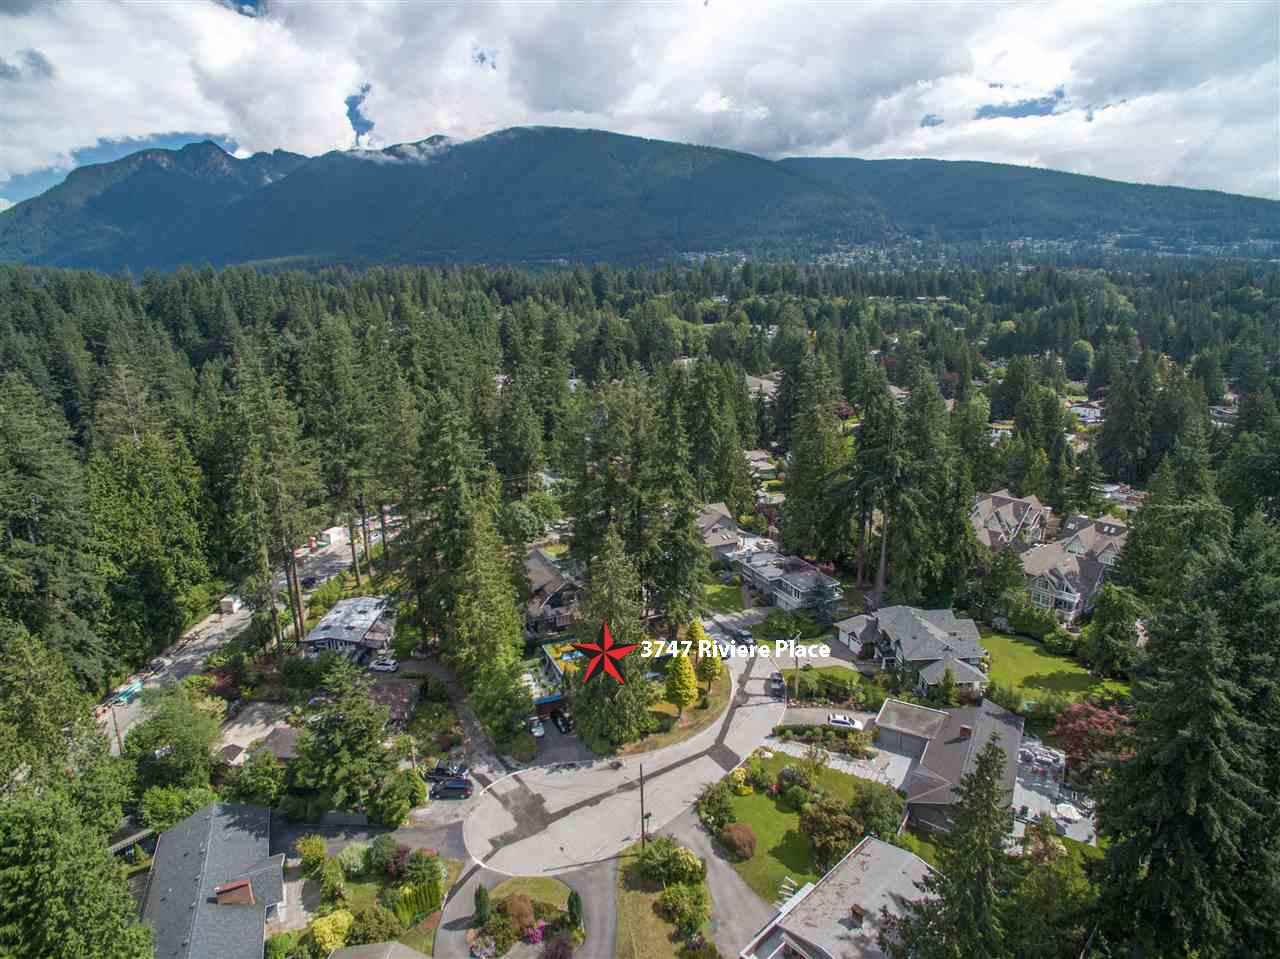 FEATURED LISTING: 3747 RIVIERE Place North Vancouver